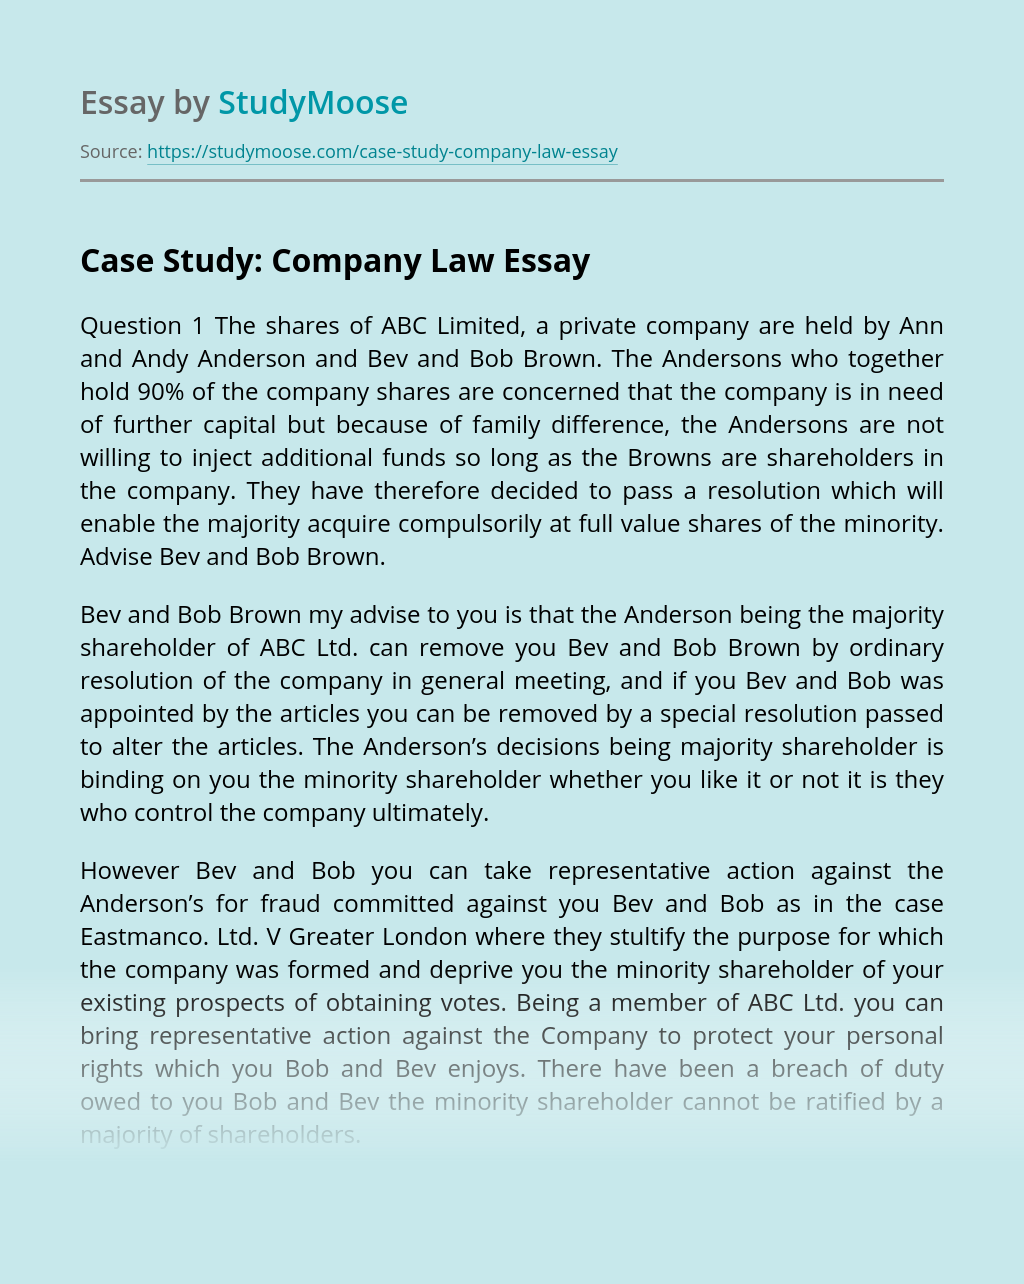 Case Study: Company Law